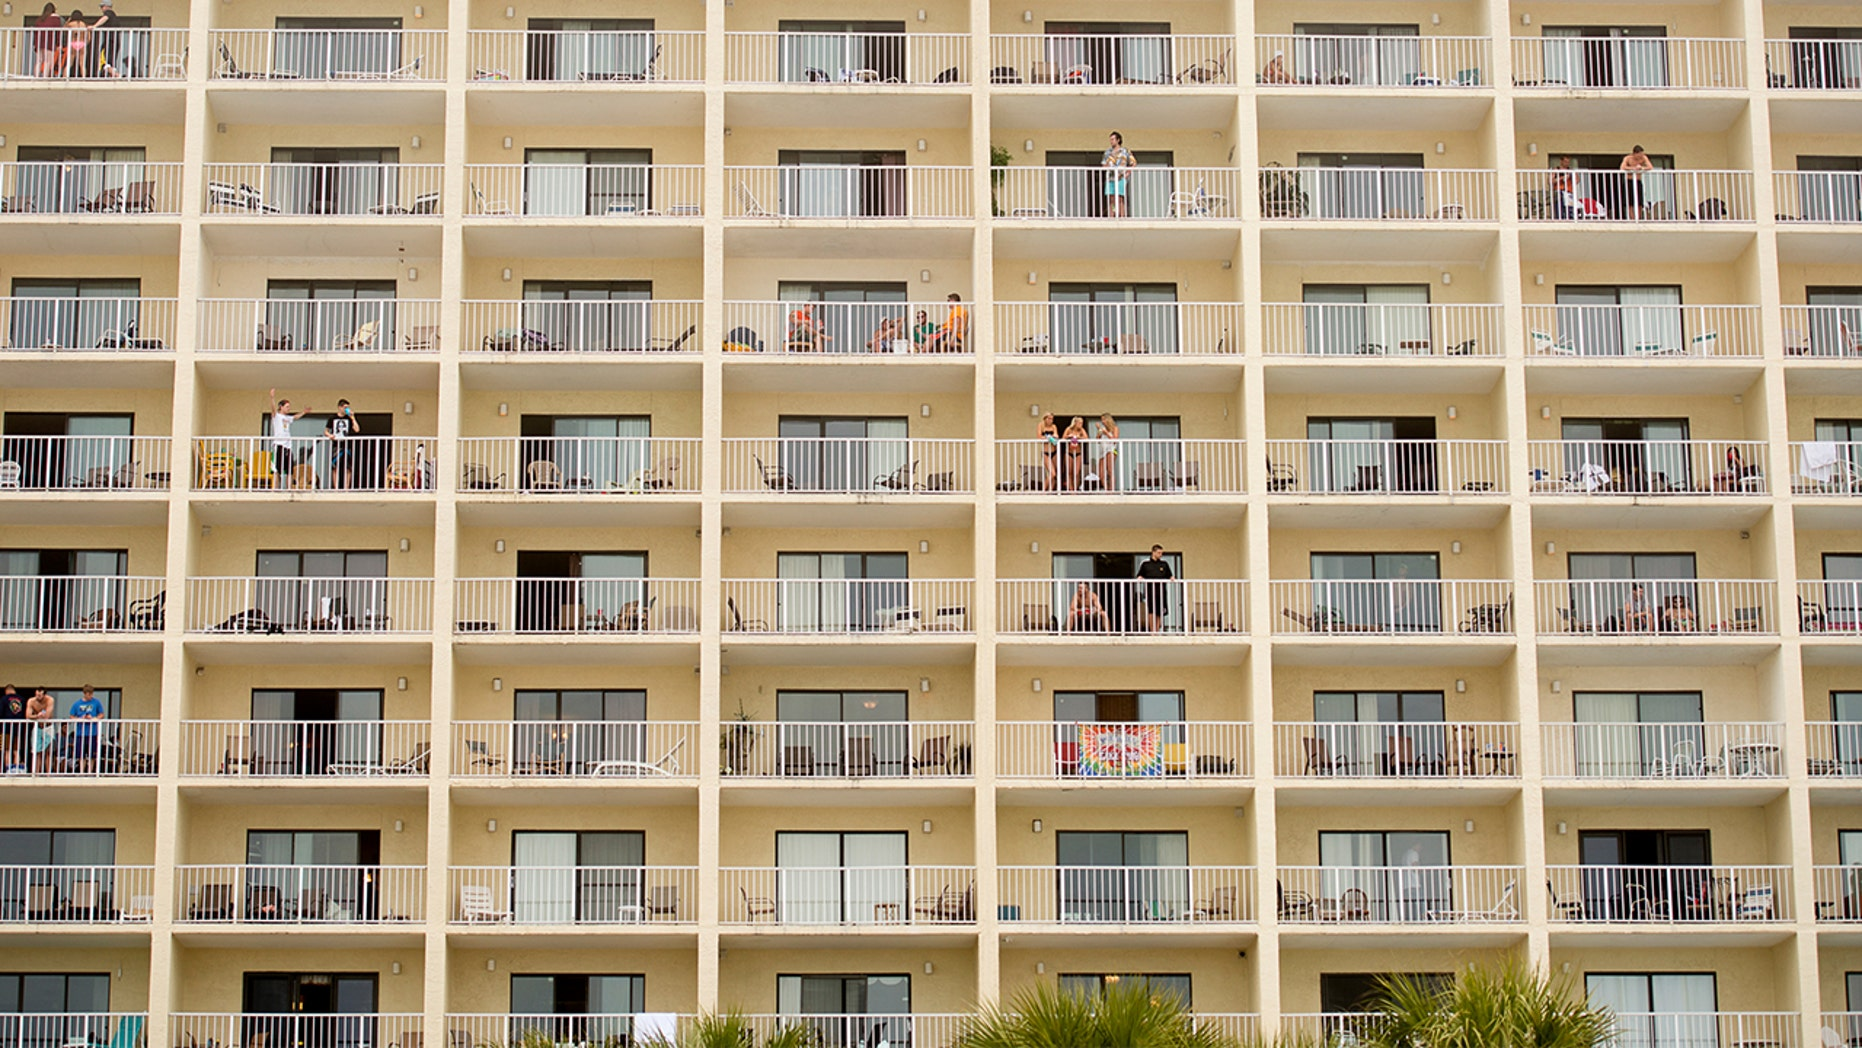 Partiers relax on hotel balconies during spring break festivities in Panama City Beach, Florida.